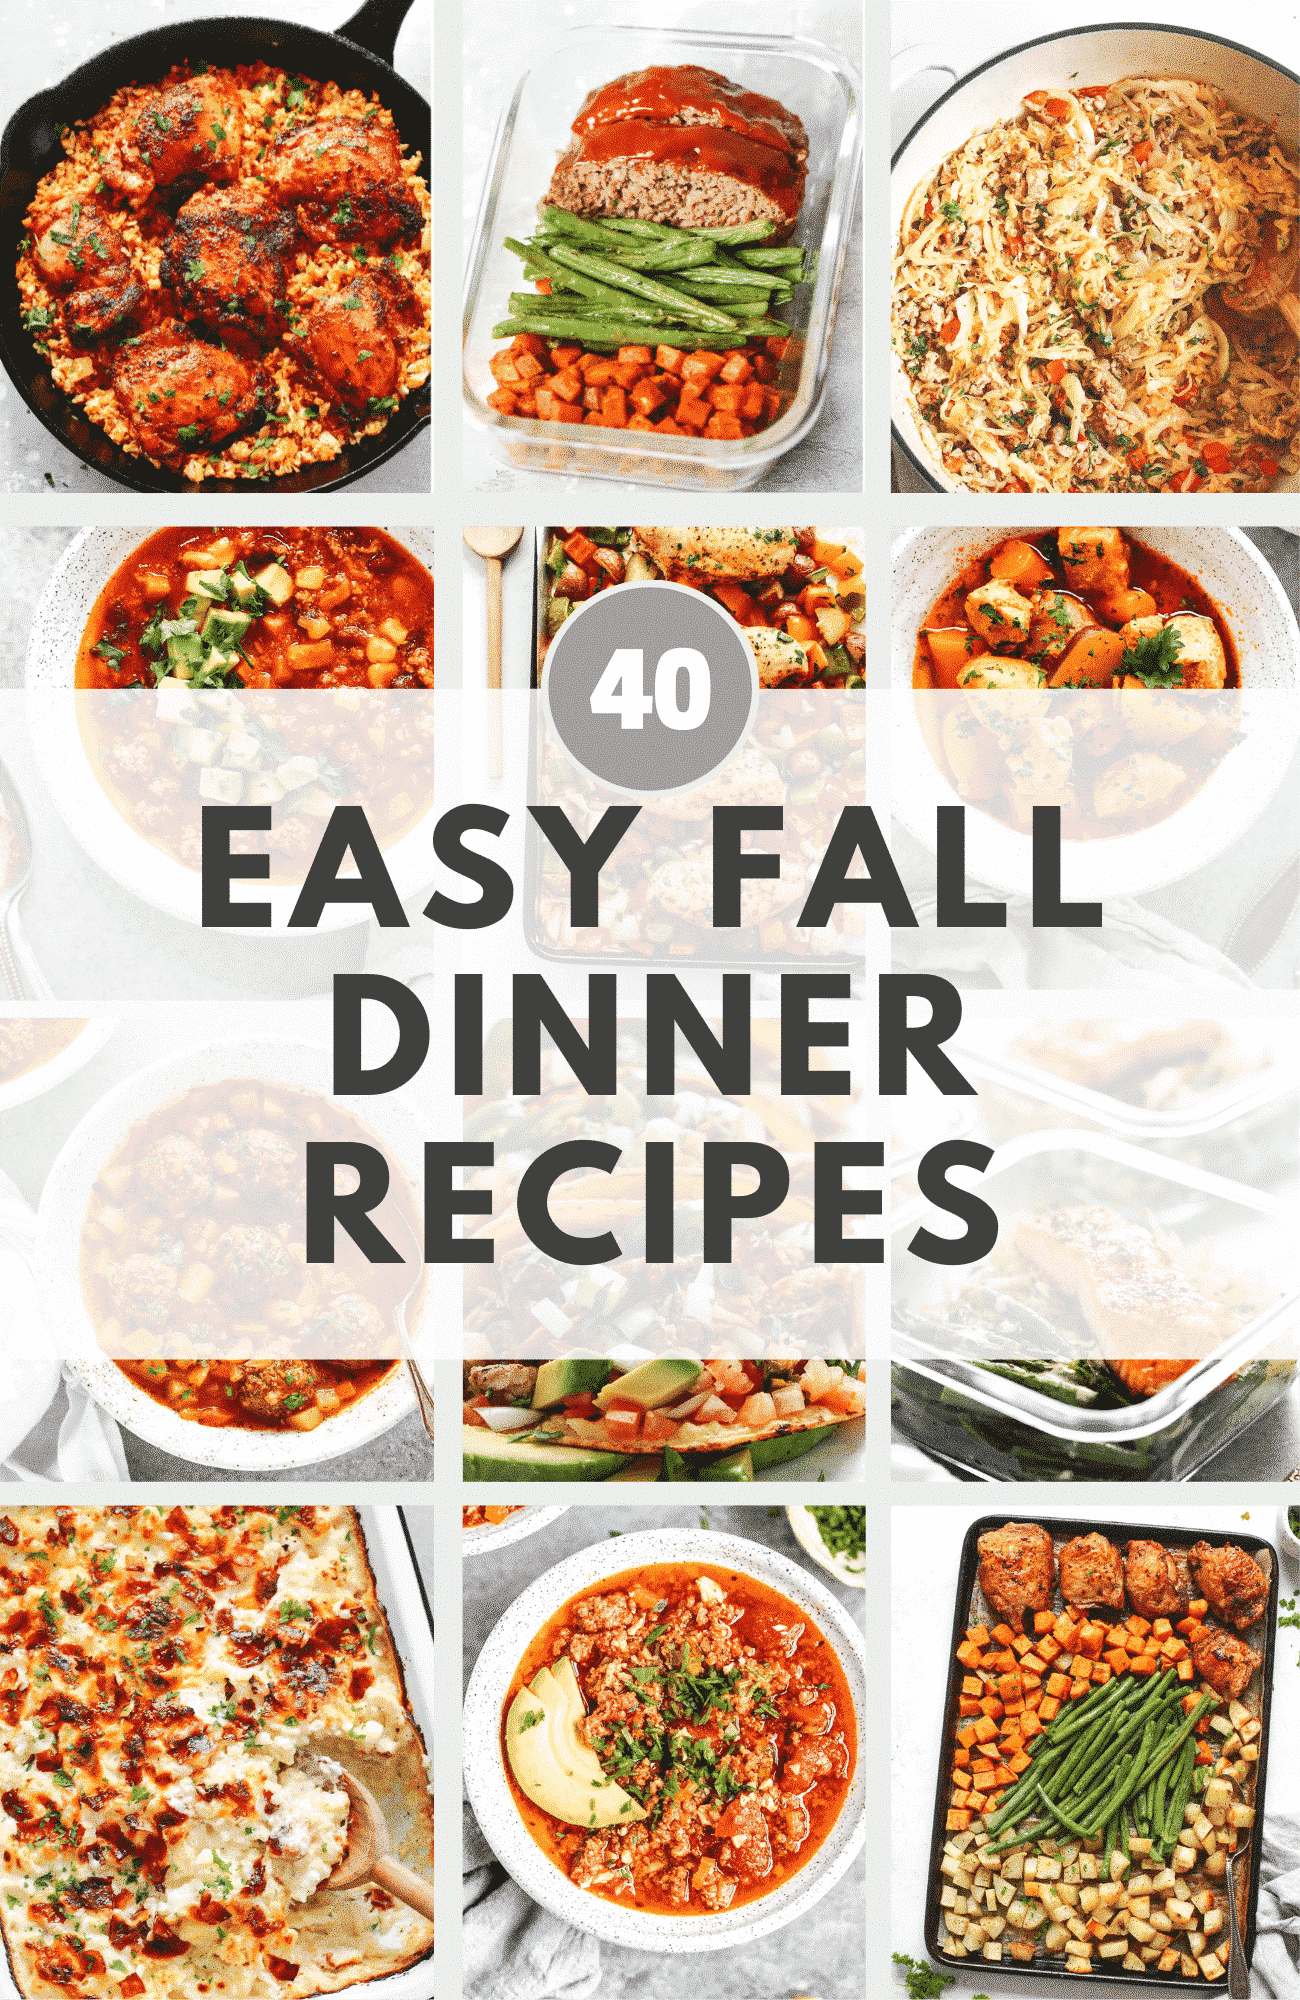 Easy Fall Dinner Recipes